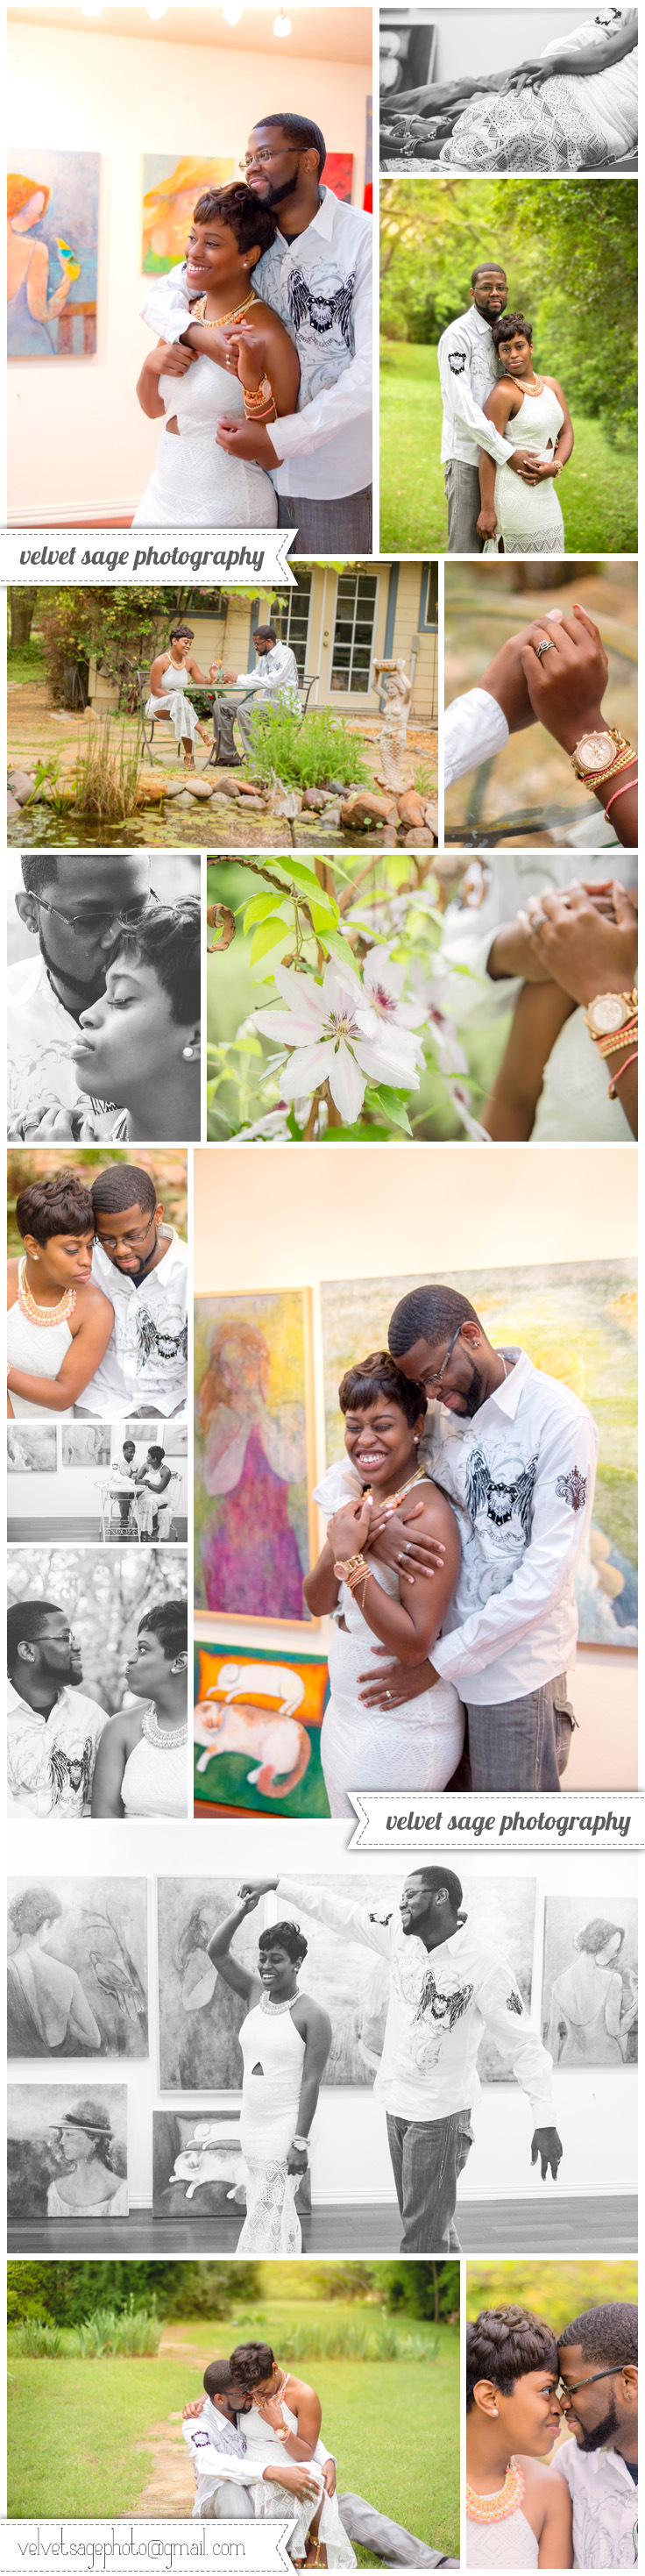 Dfw engagement photographer -  north Richland hills  couples photography